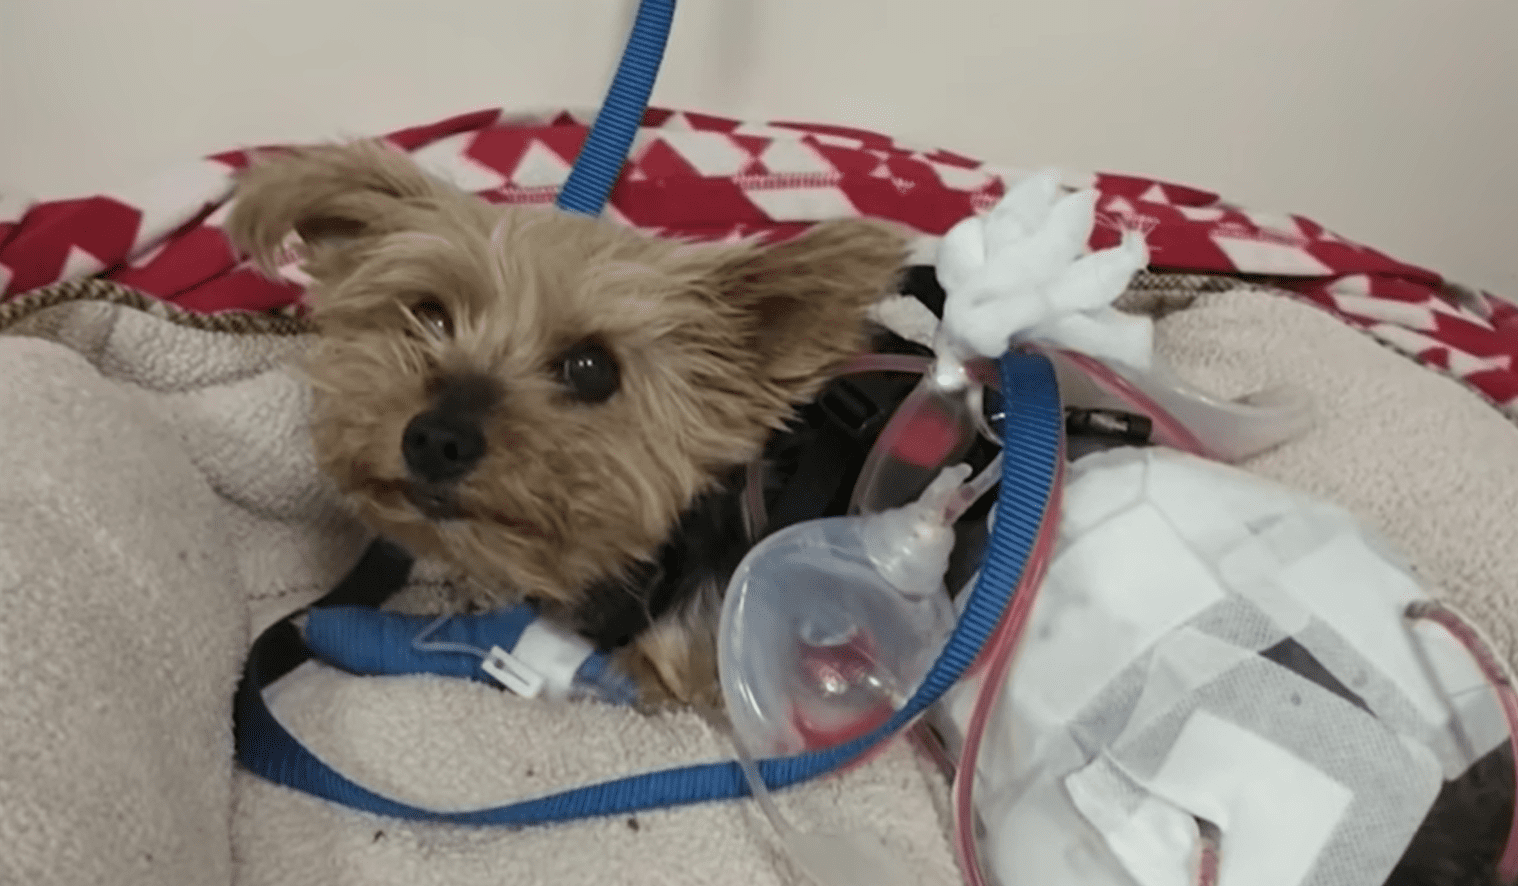 A 6-year-old Yorkie named Macy in intensive care. | Source: youtube.com/Your Morning